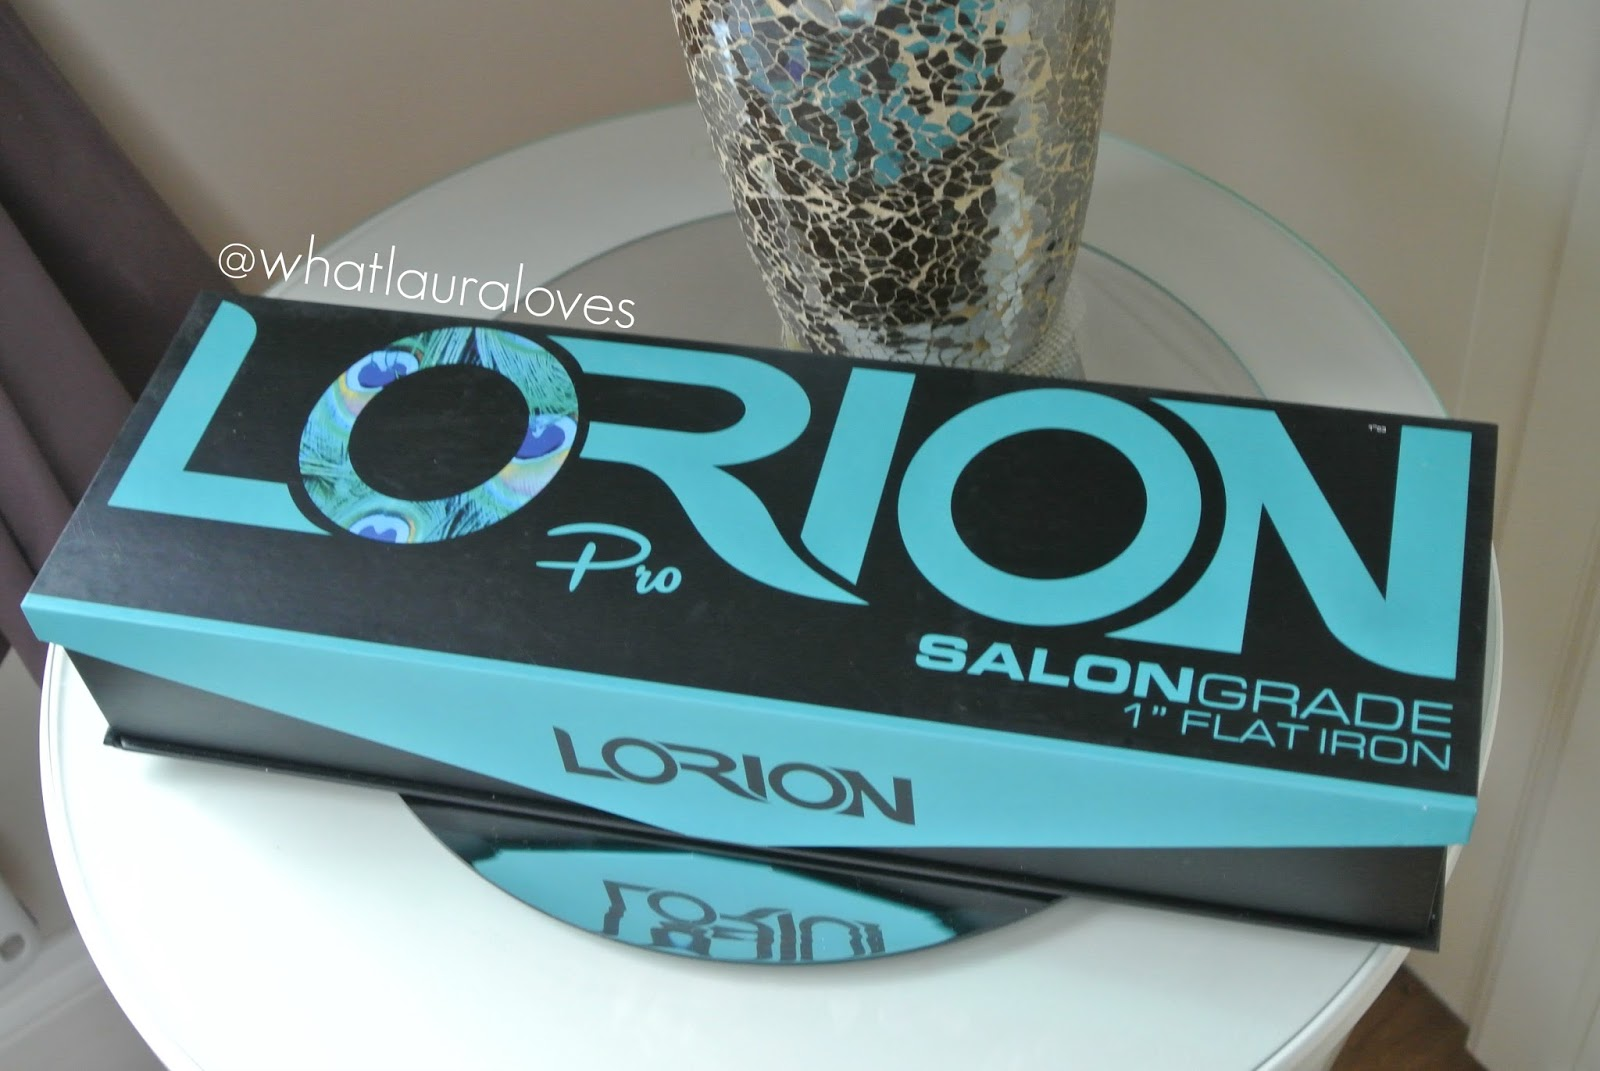 The Best Flat Iron For Straightening AND Curling from Lorion